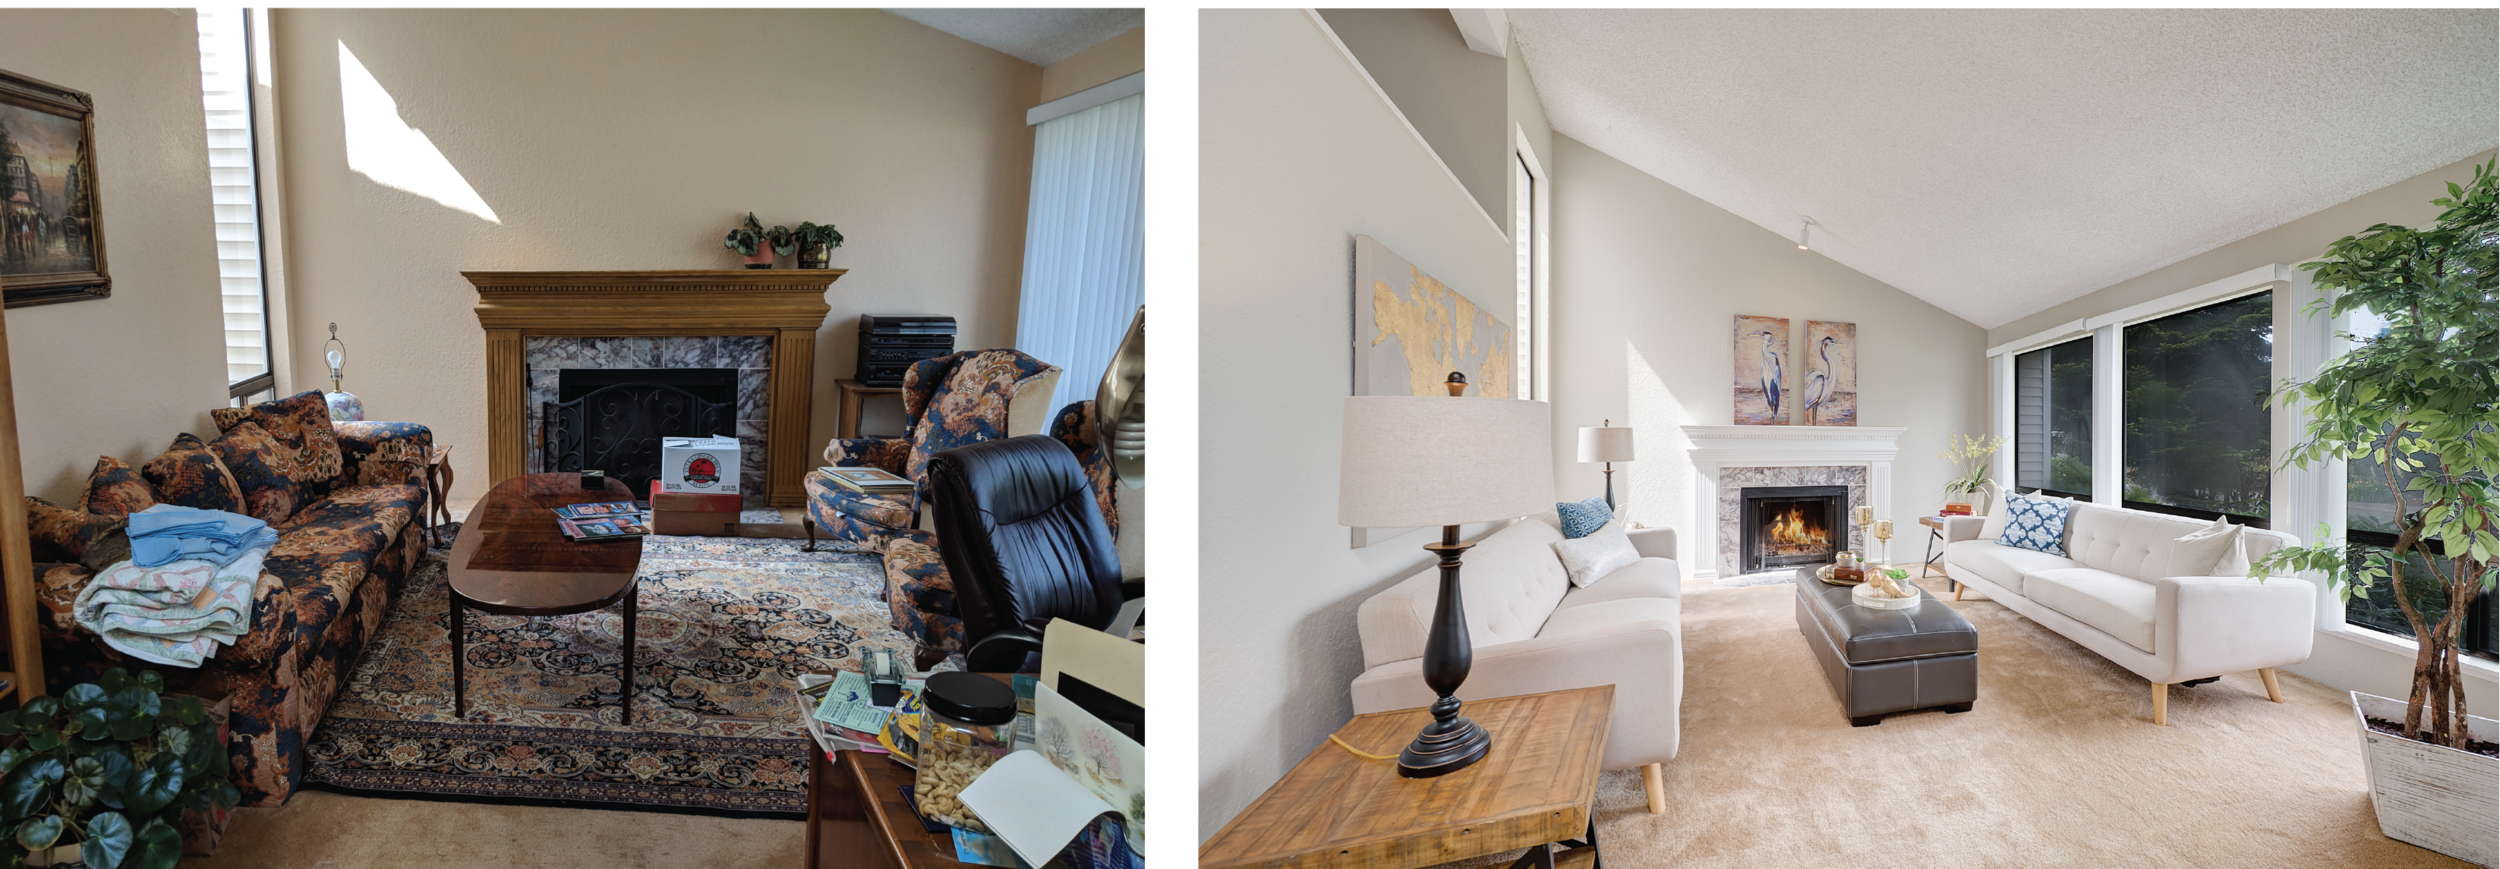 ARC+Before+and+Afters+Staging+Blog+PostAR-02.png